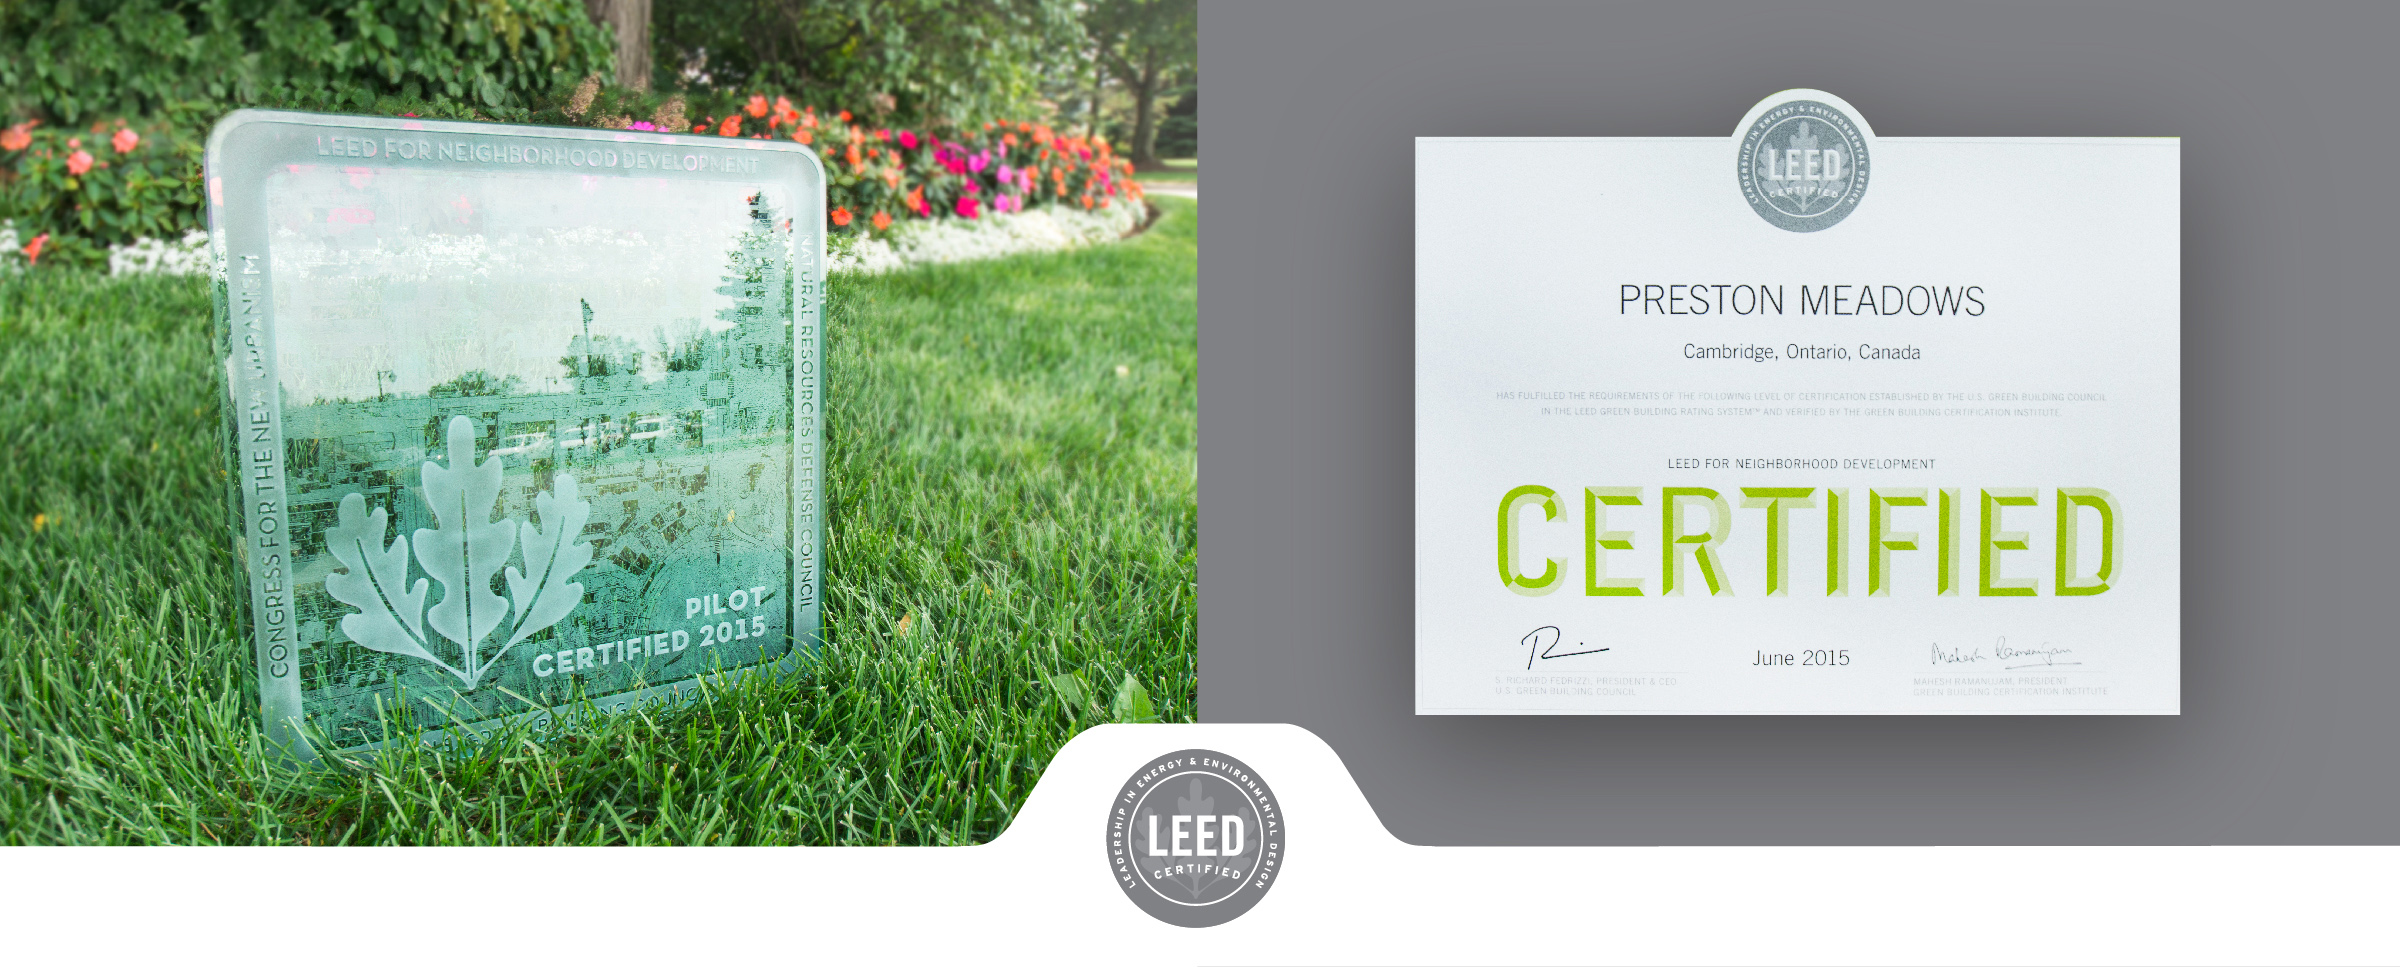 Preston Meadows Is The First Fully Certified Pilot Leed